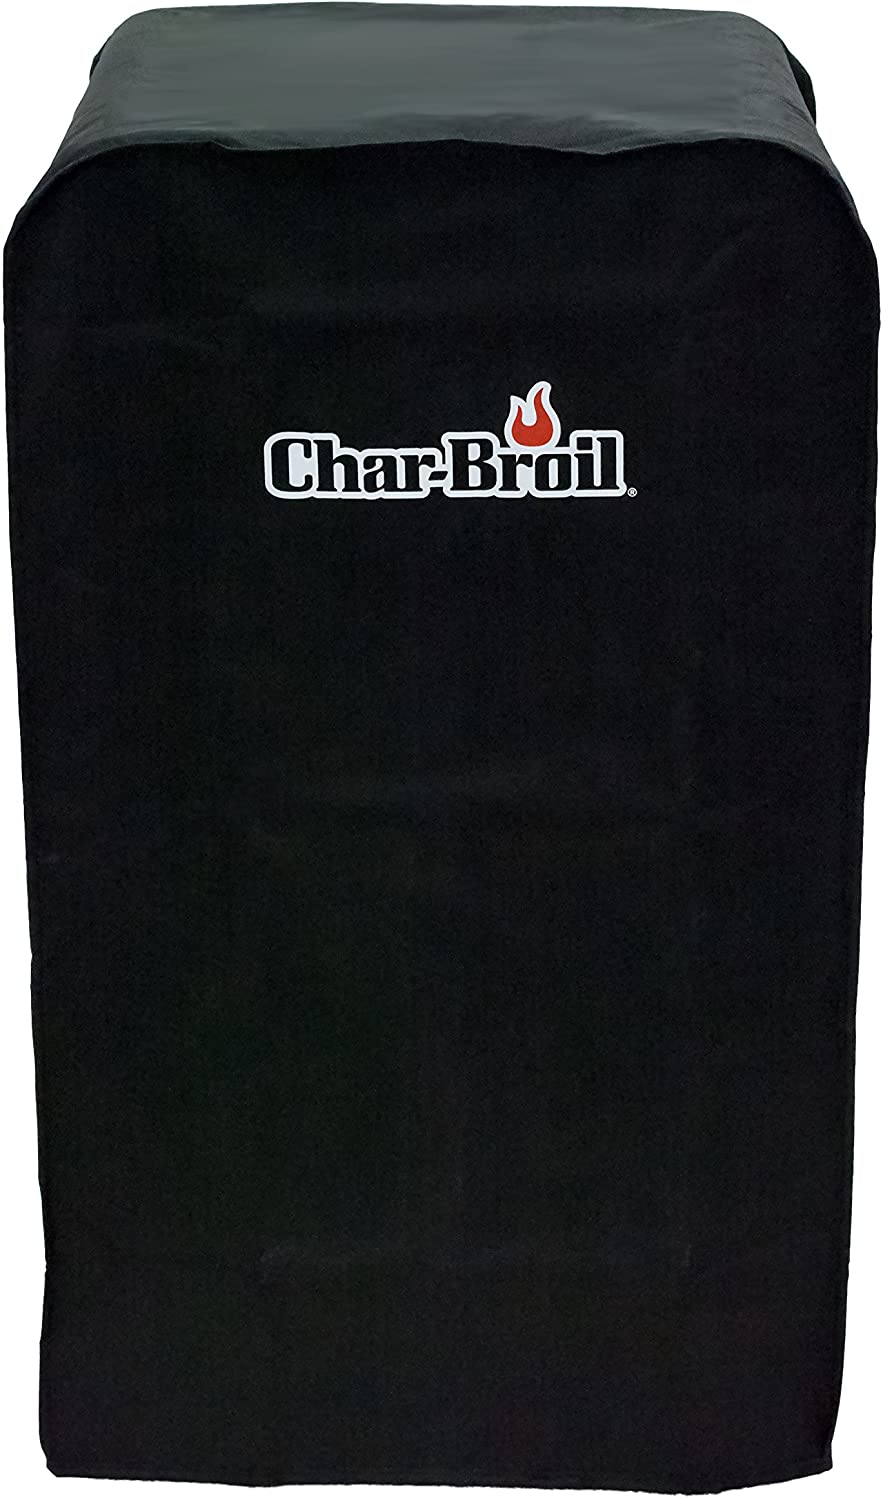 Char-Broil Digital Electric Smoker Cover, 30